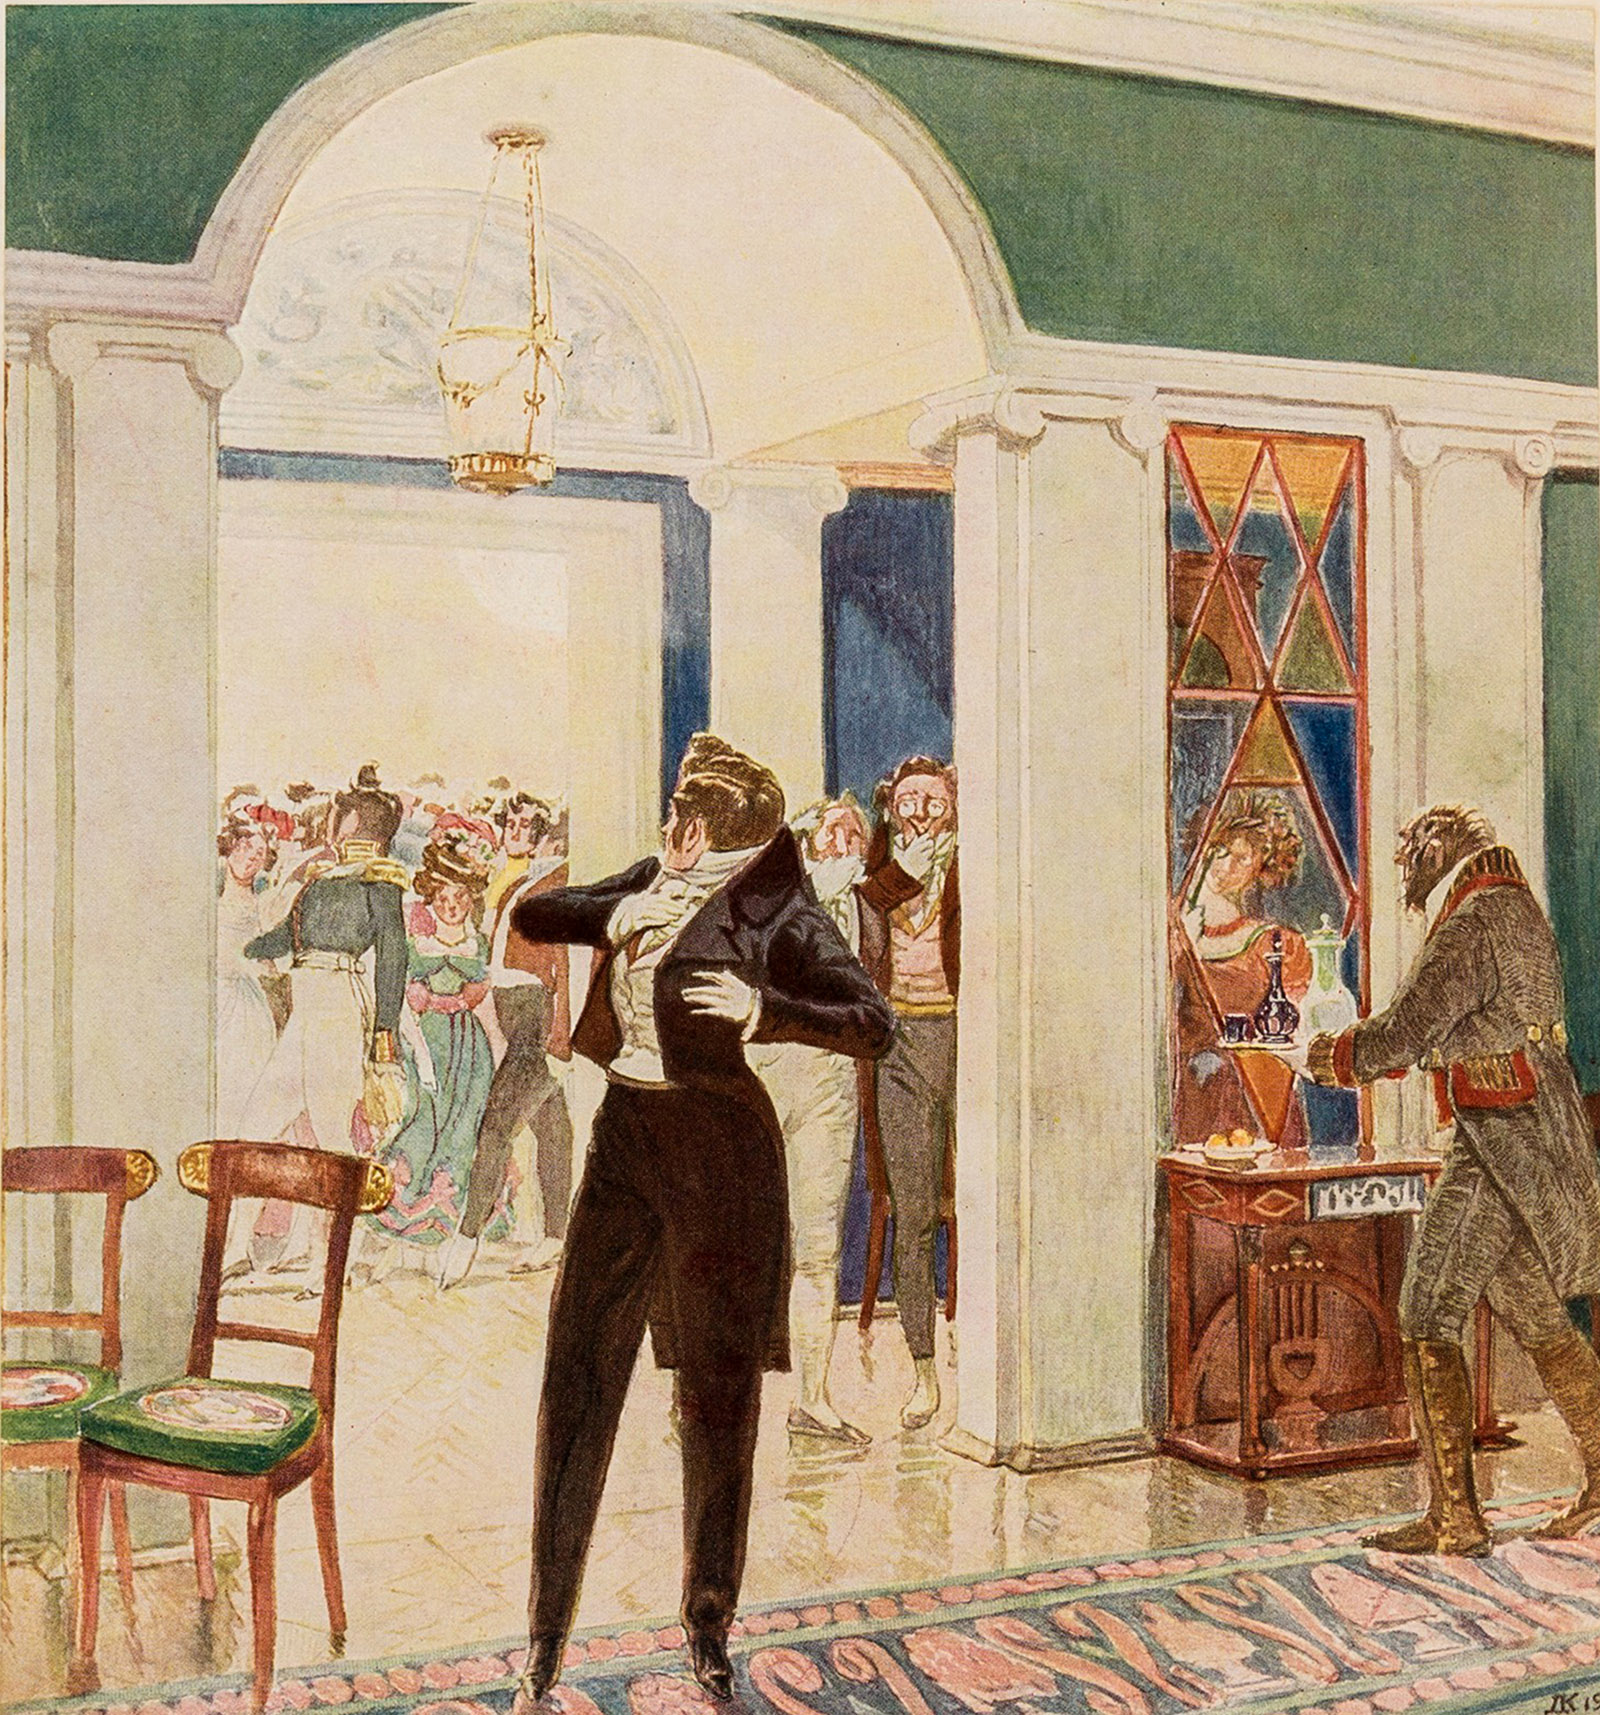 A scene from Alexander Griboedov's Woe from Wit